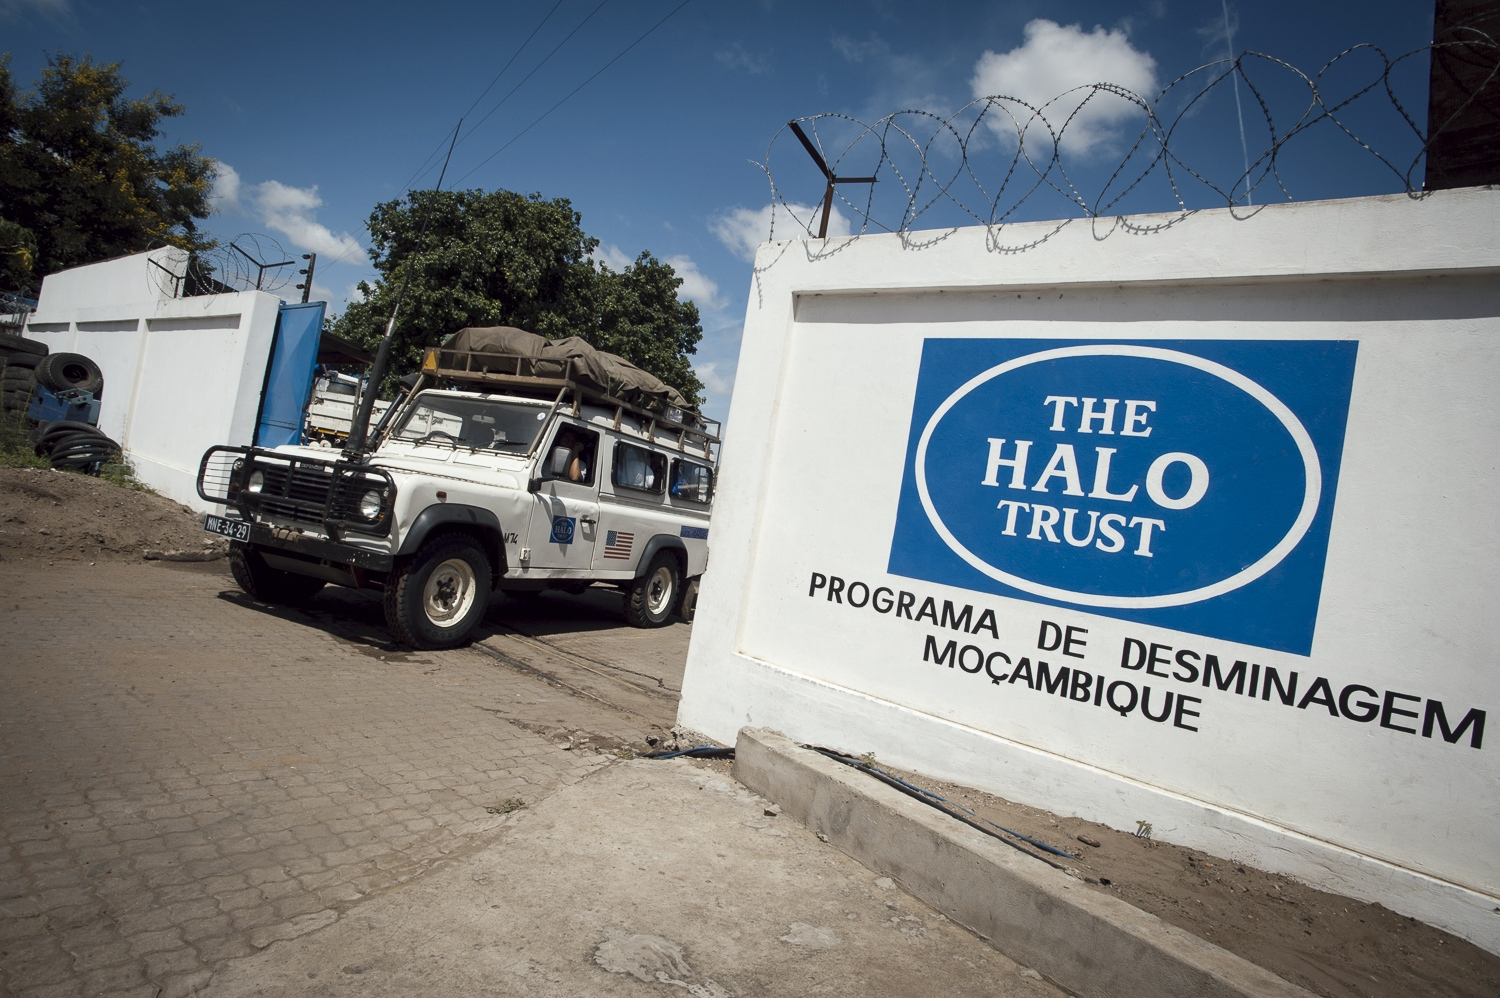 Deployment day. HALO Deminers leave Zimpeto compound in Maputo to travel to their minefields. They will not return for 21 days. Living and working at the minefield.